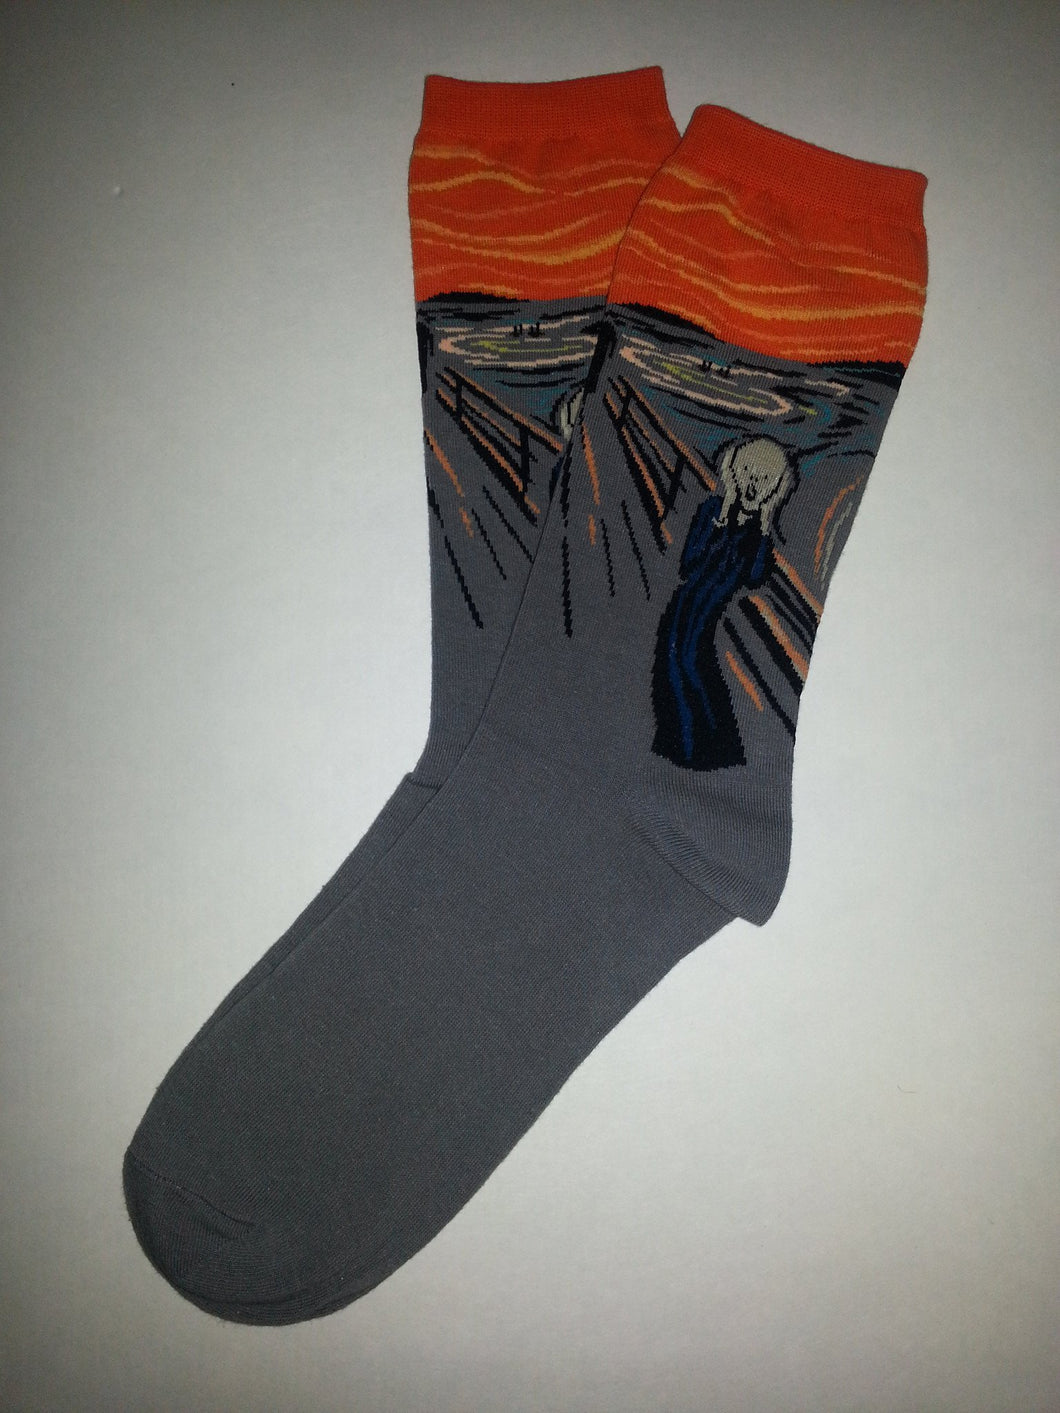 The Scream by Edvard Munch Crew Socks